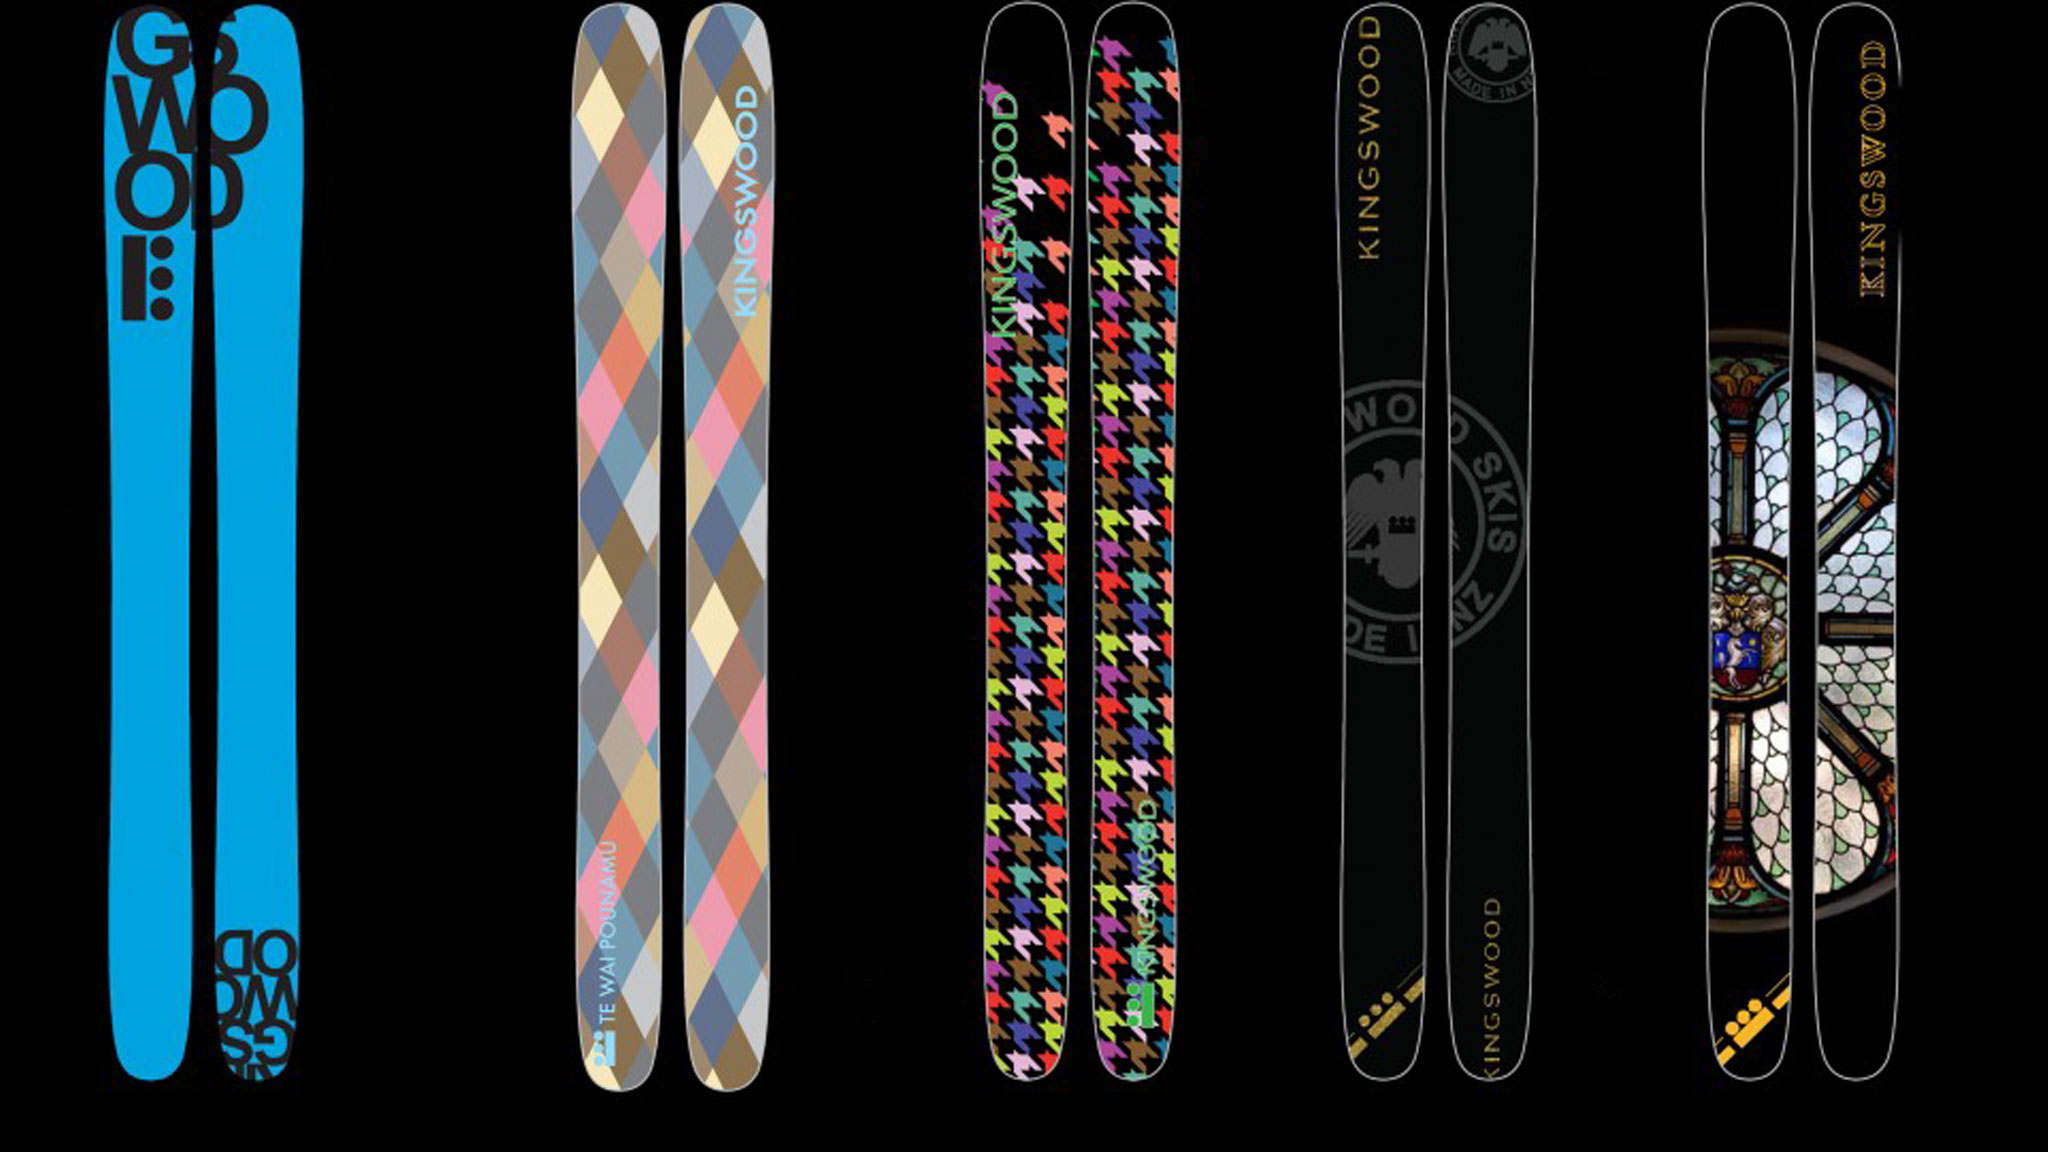 The flex, weight, length and graphics of New Zealand's Kingswood Skis can be customized.